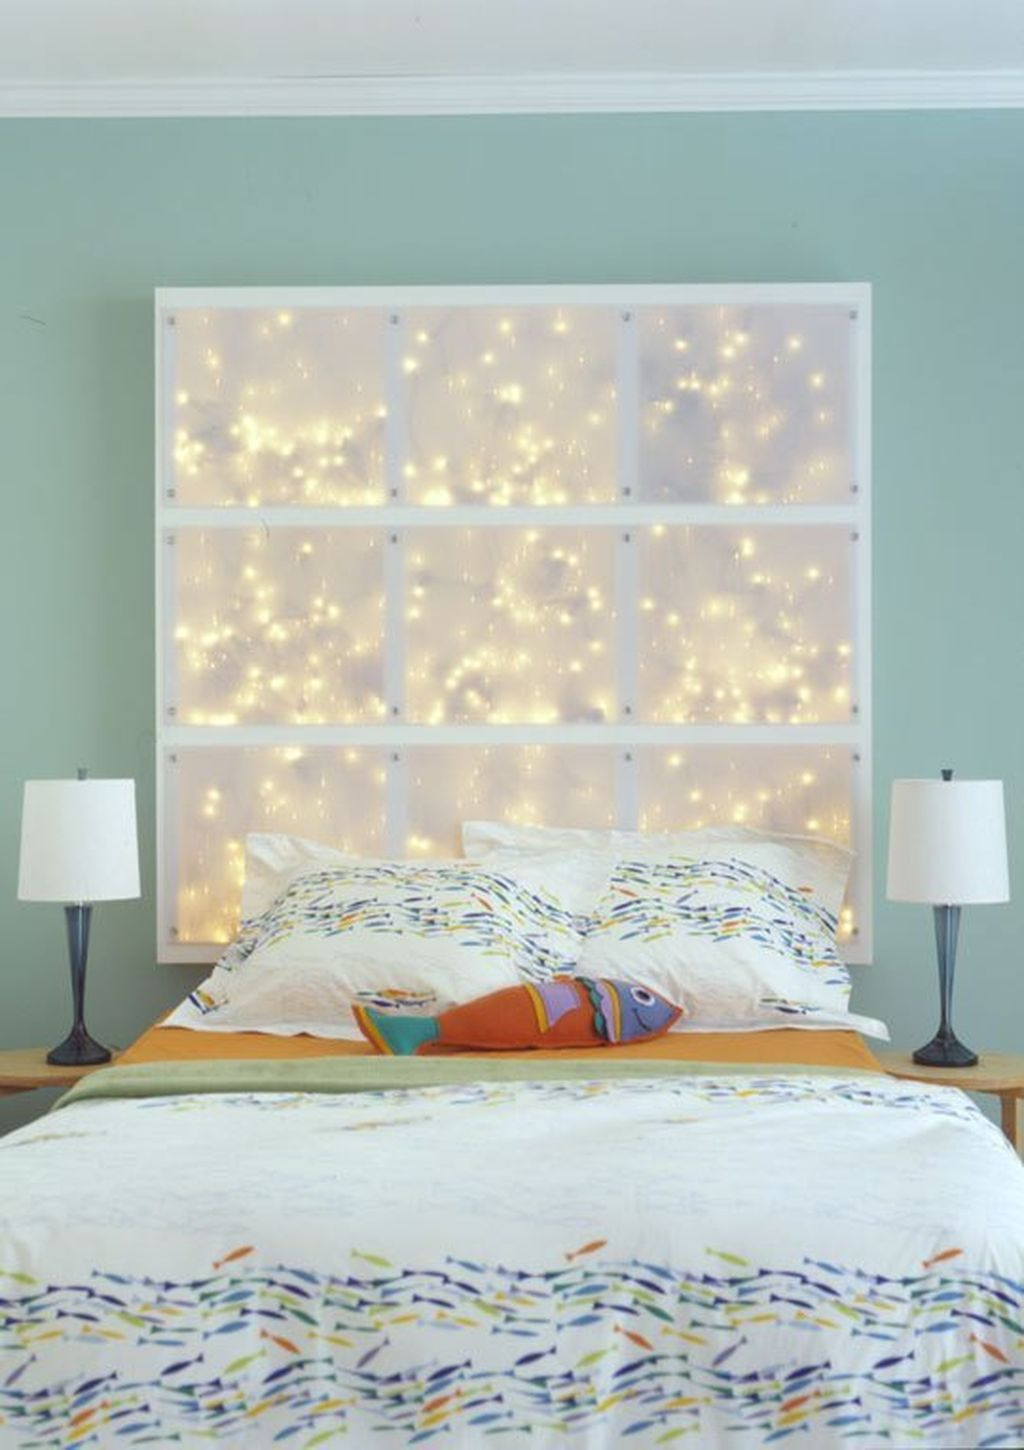 51 Best Creative DIY Headboard Ideas with Lights for Your Bedroom     51 Best Creative DIY Headboard Ideas with Lights for Your Bedroom